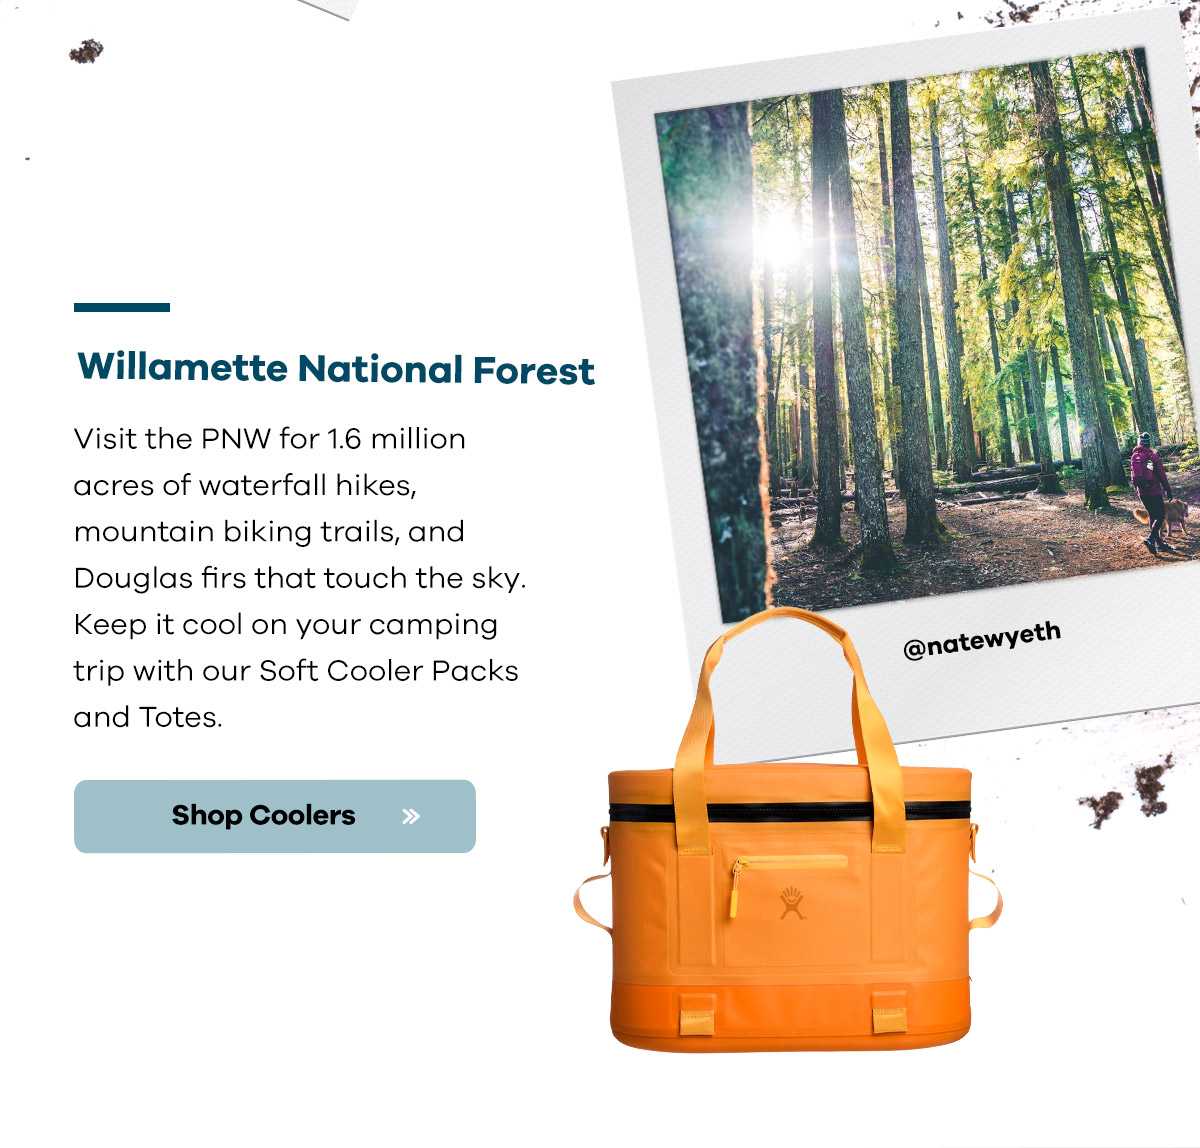 Wilamette National Forest | Visit the PNW for 1.6 million acres of waterfall hikes, mountain biking trails, and Douglas firs that touch the sky. Keep it cool on your camping trip with our Soft Cooler Packs and Totes | Shop Coolers >>